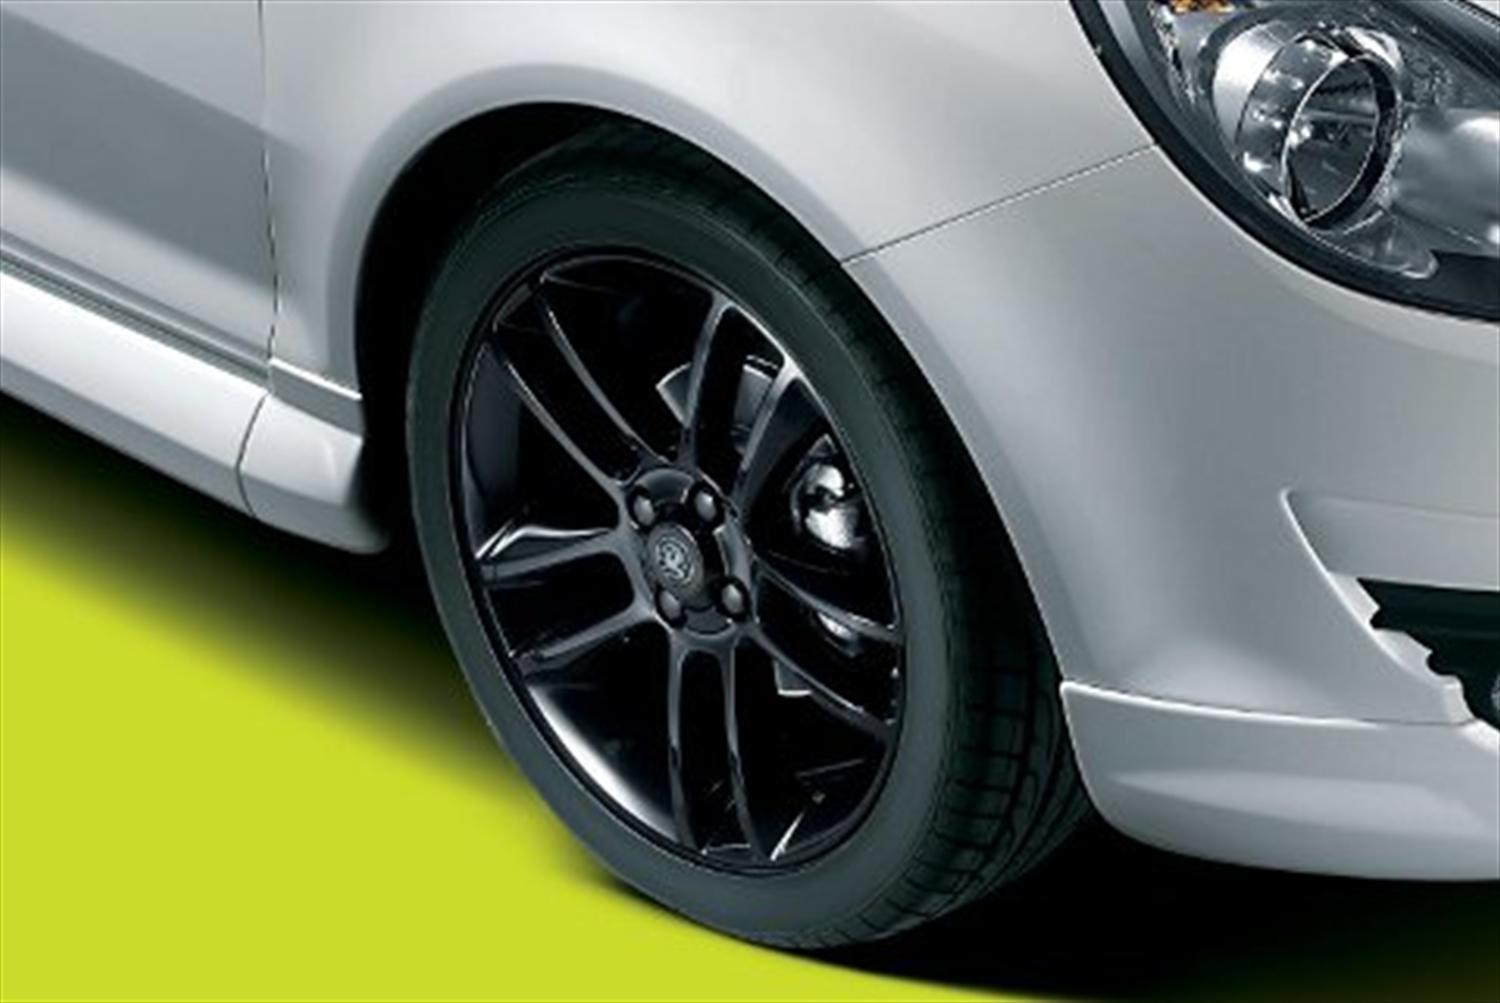 New alloy wheels for Vauxhall Corsa